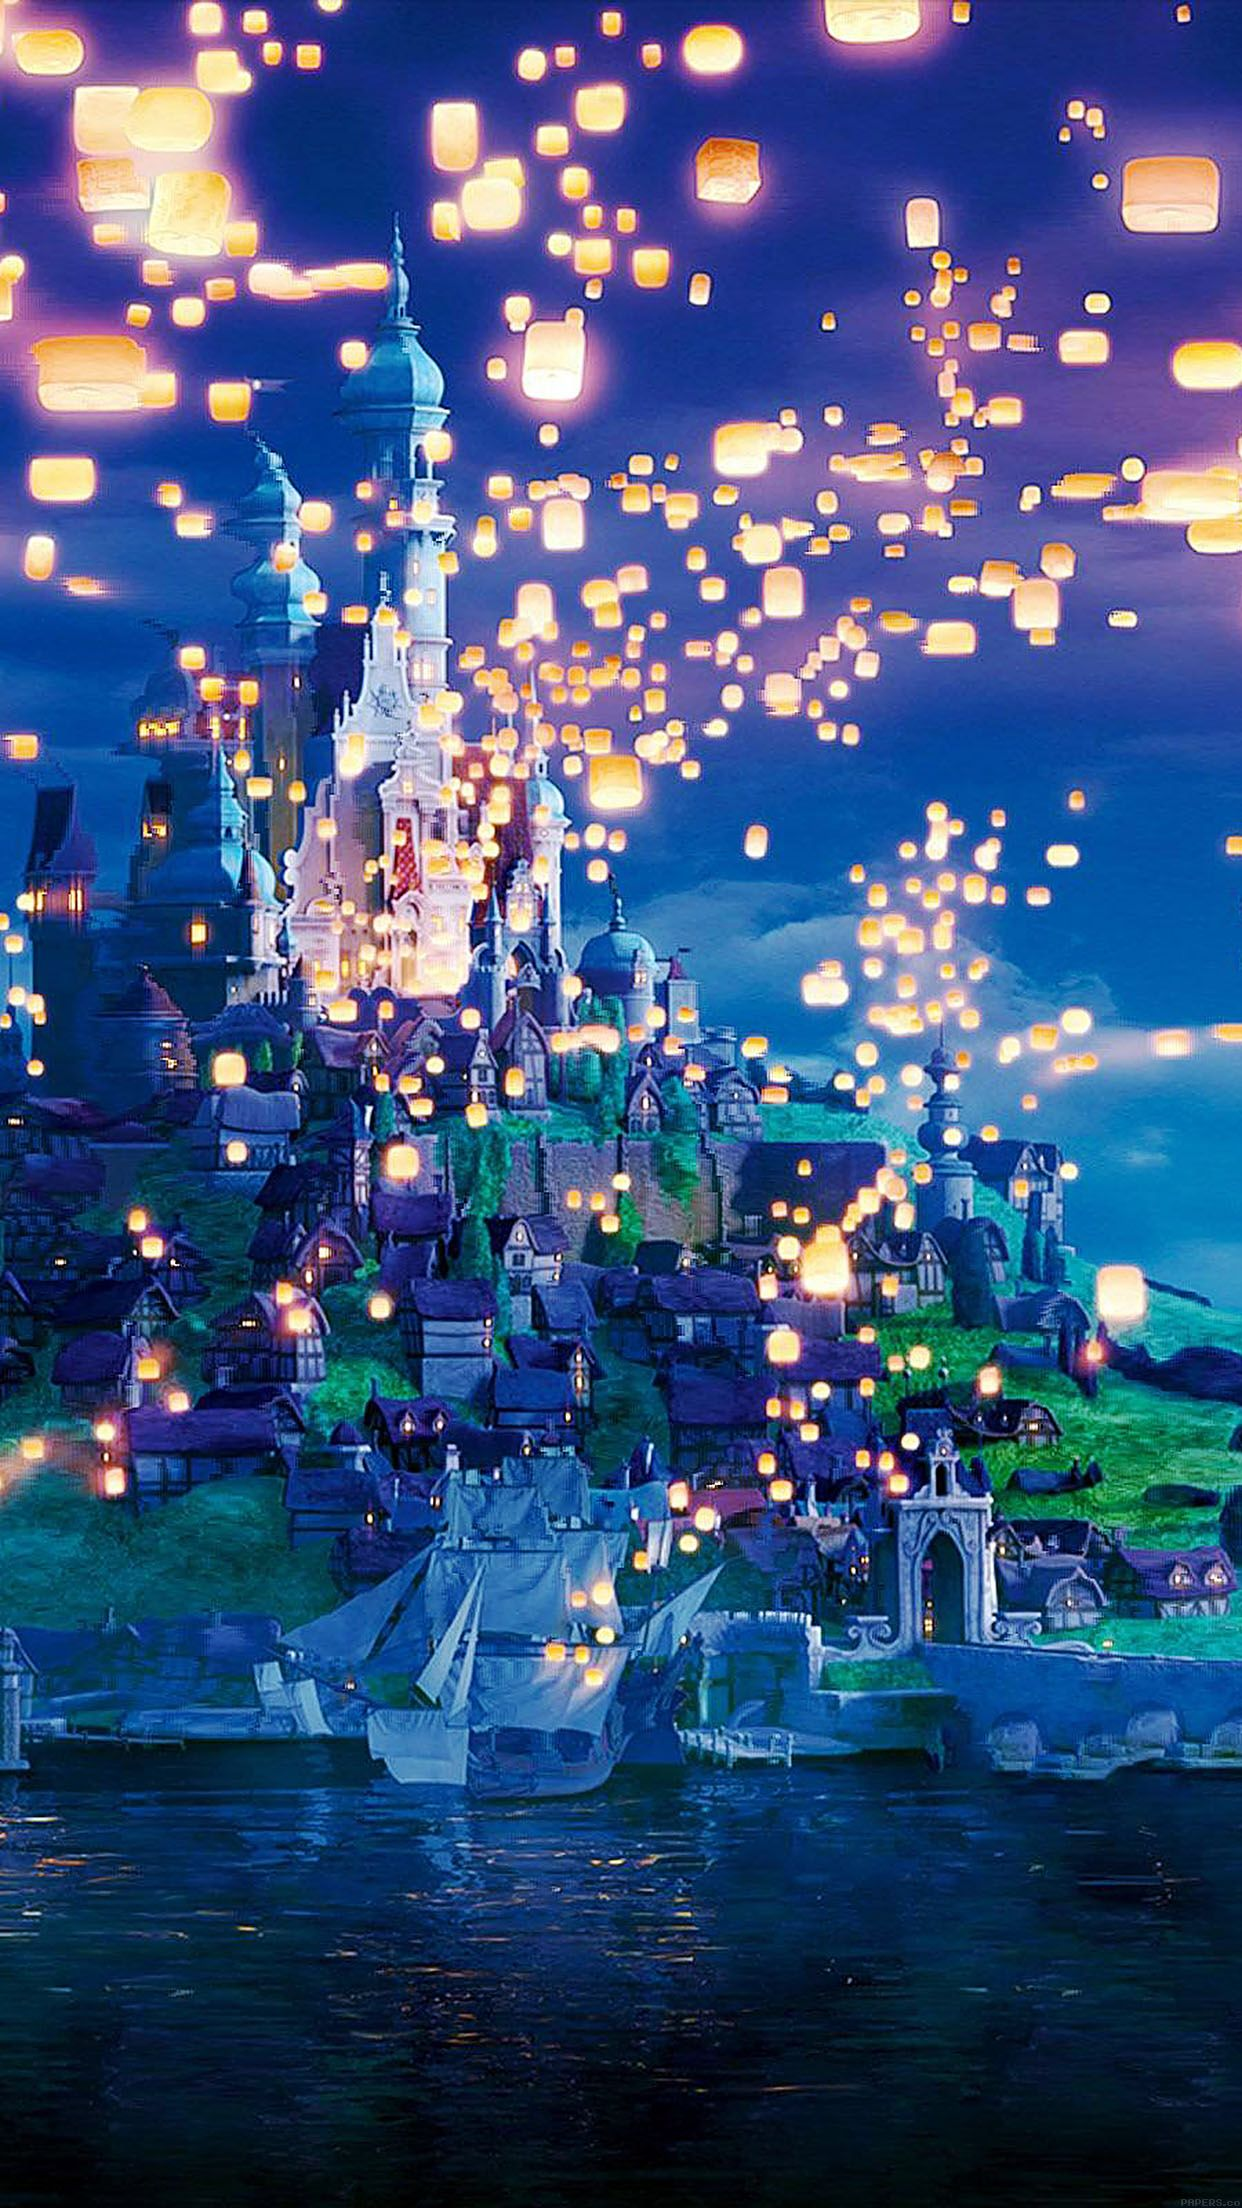 Tangled movie, lanterns